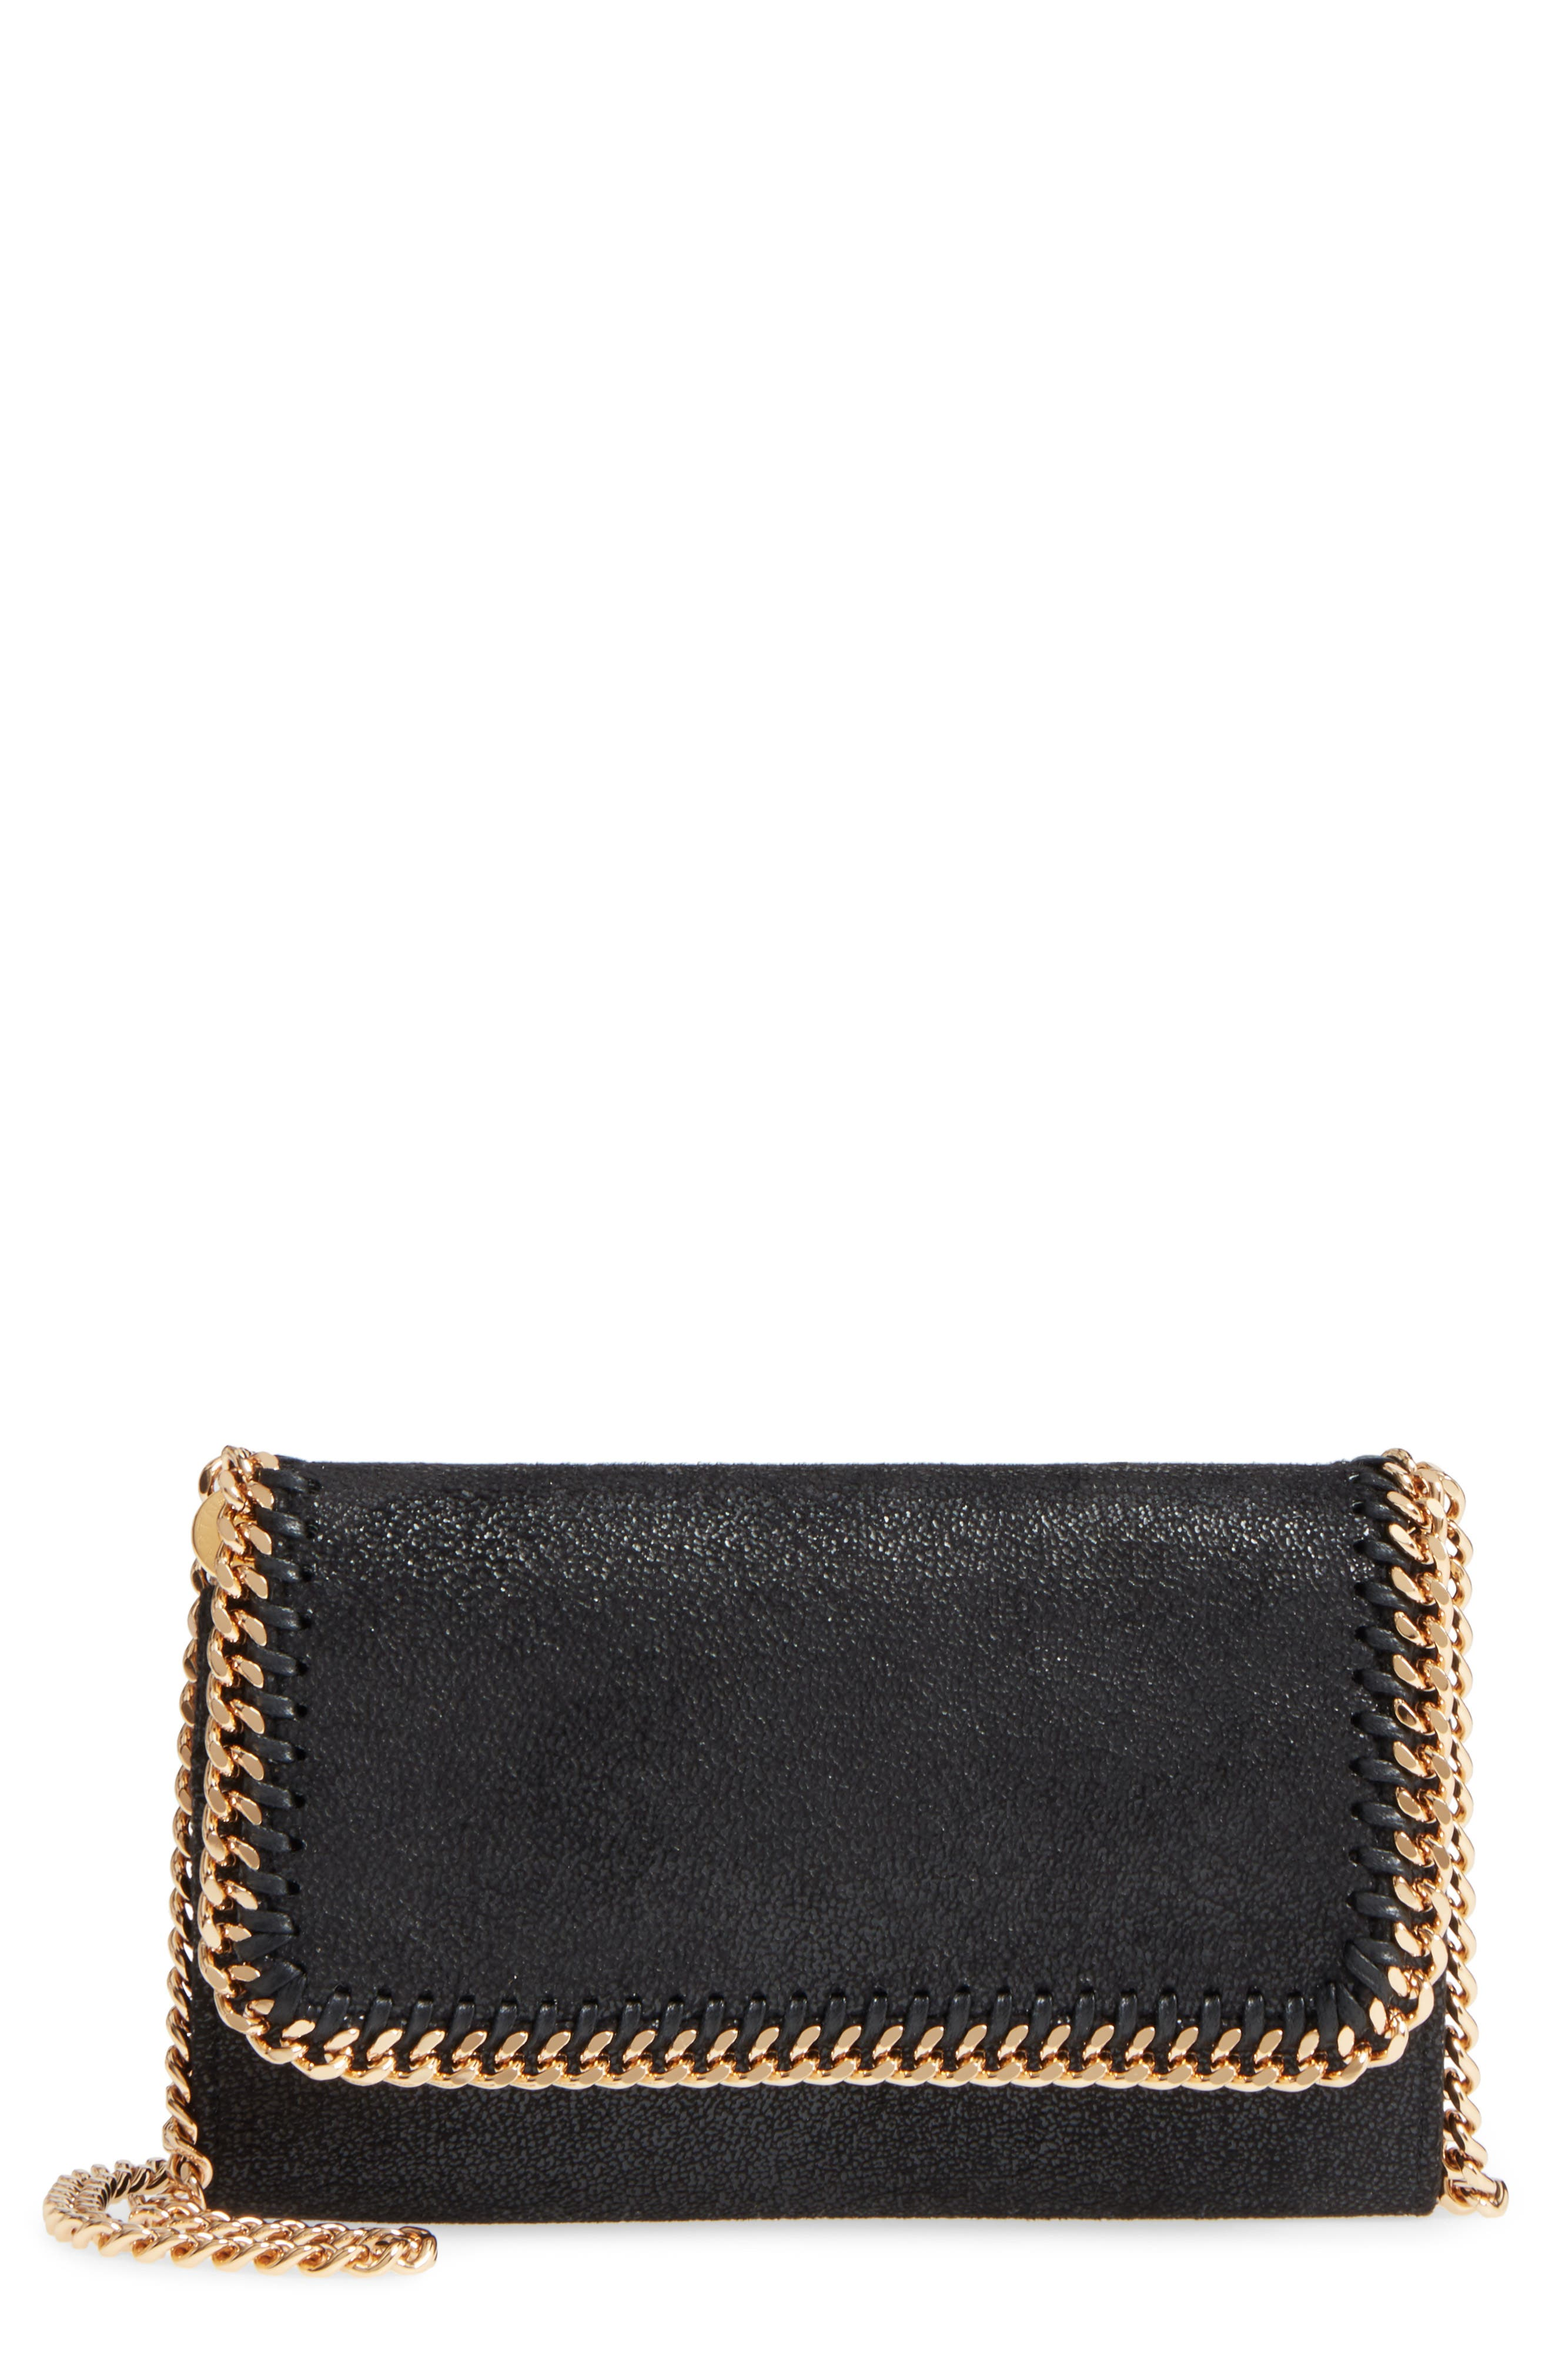 Shaggy Deer Faux Leather Crossbody Bag,                             Main thumbnail 1, color,                             Black